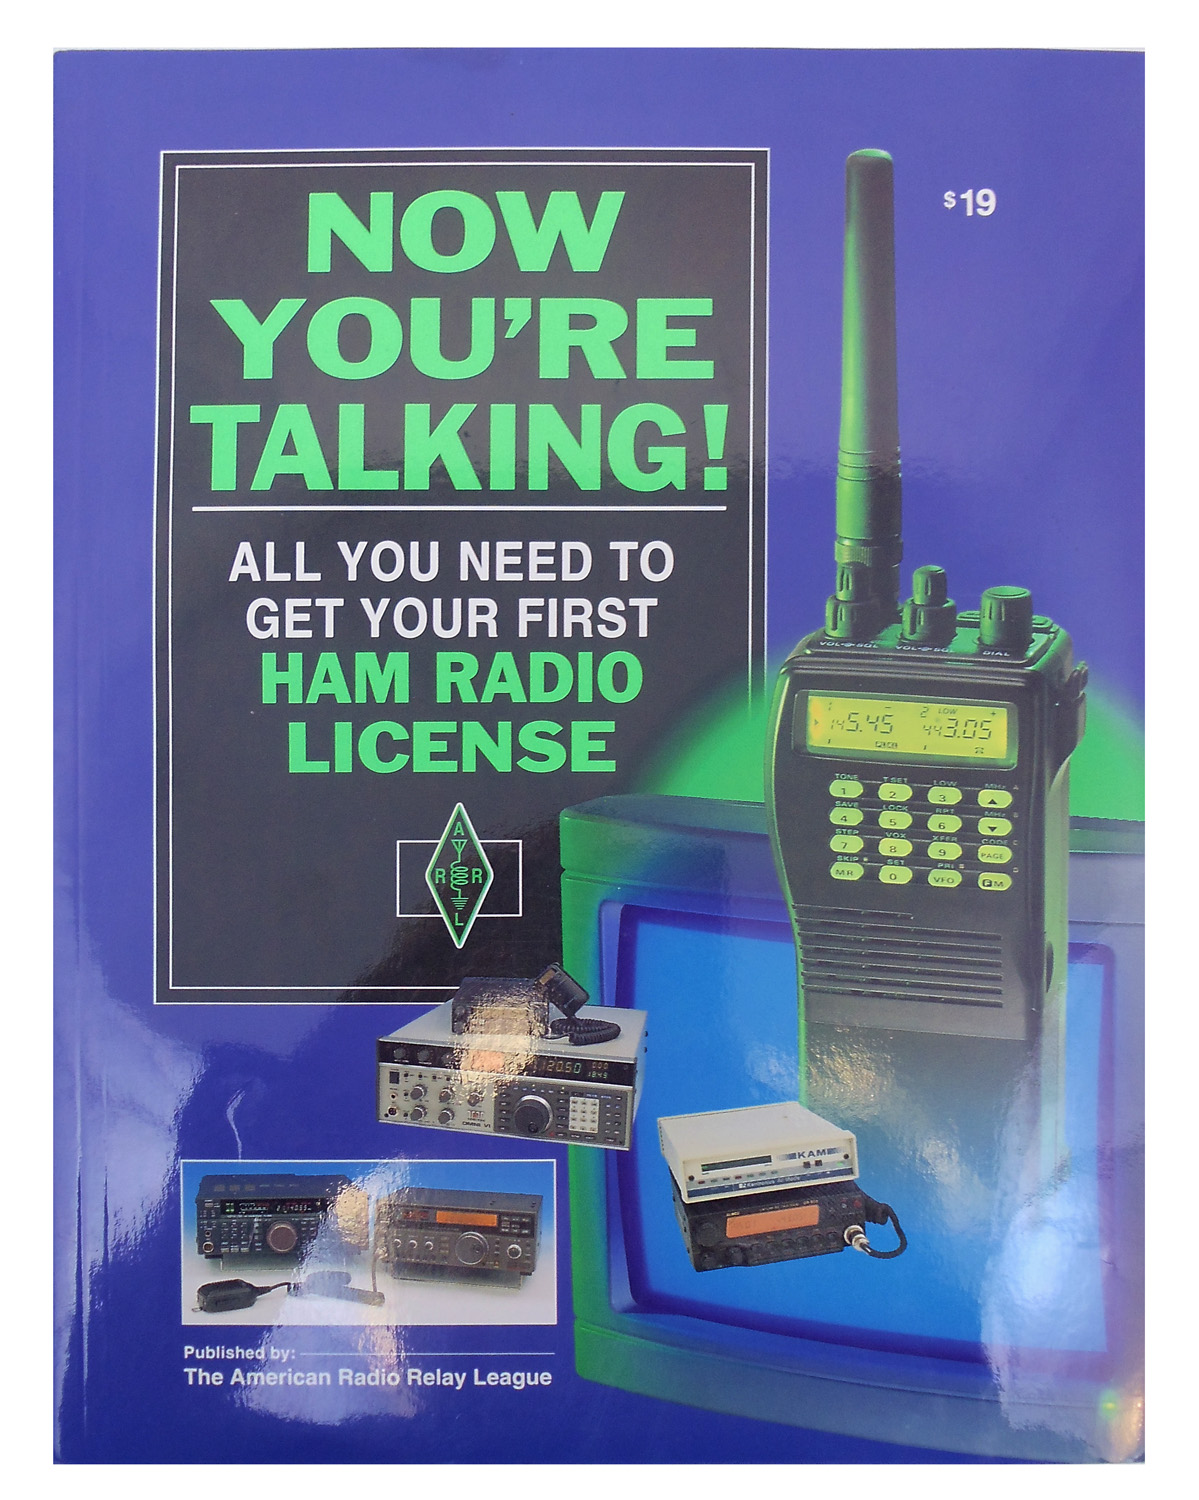 391 PAGE MANUAL TO GET FIRST HAM RADIO LICENSE